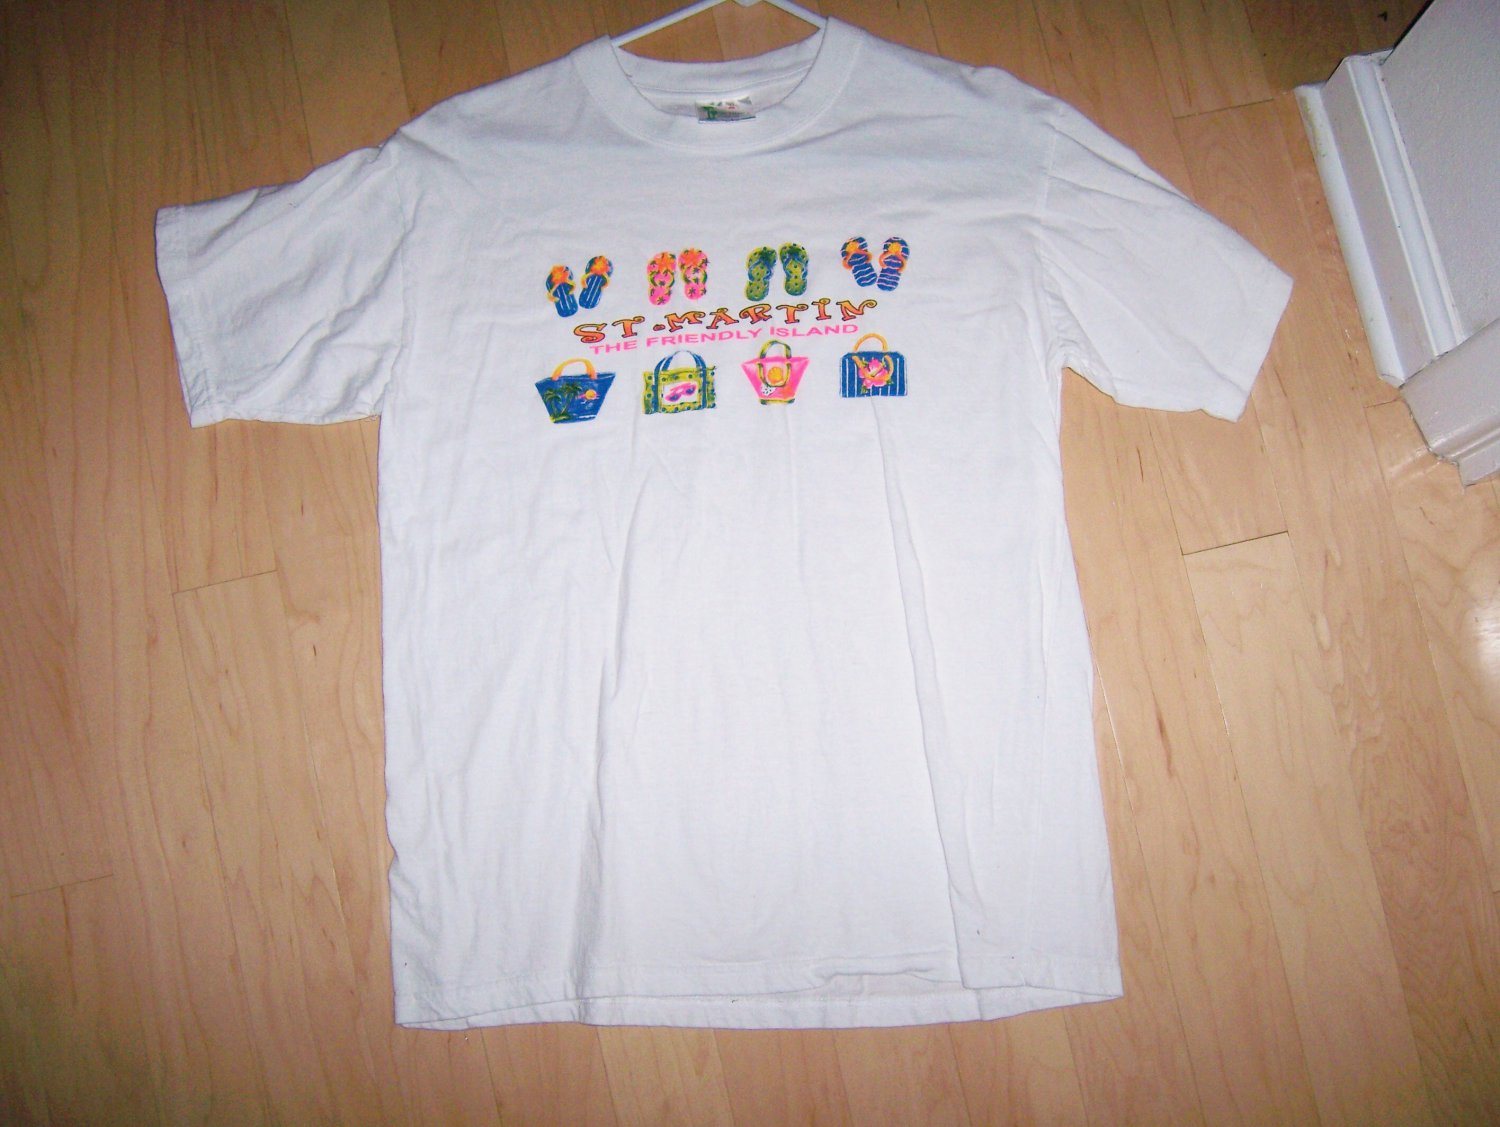 Short Sleeve Shirt White By Caribbeant's Large BNK1409